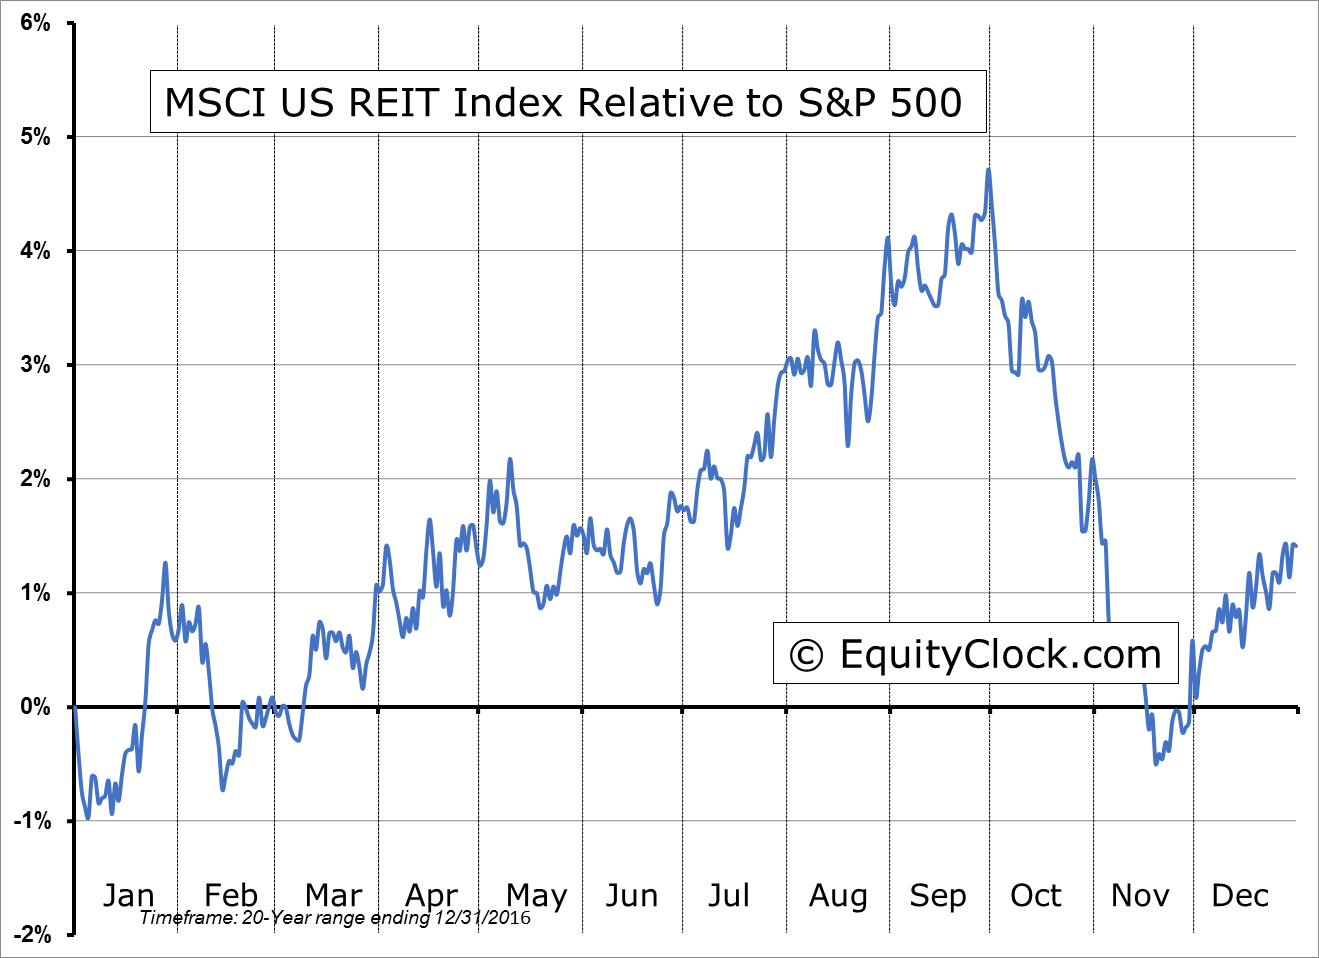 ^RMZ Relative to the S&P 500